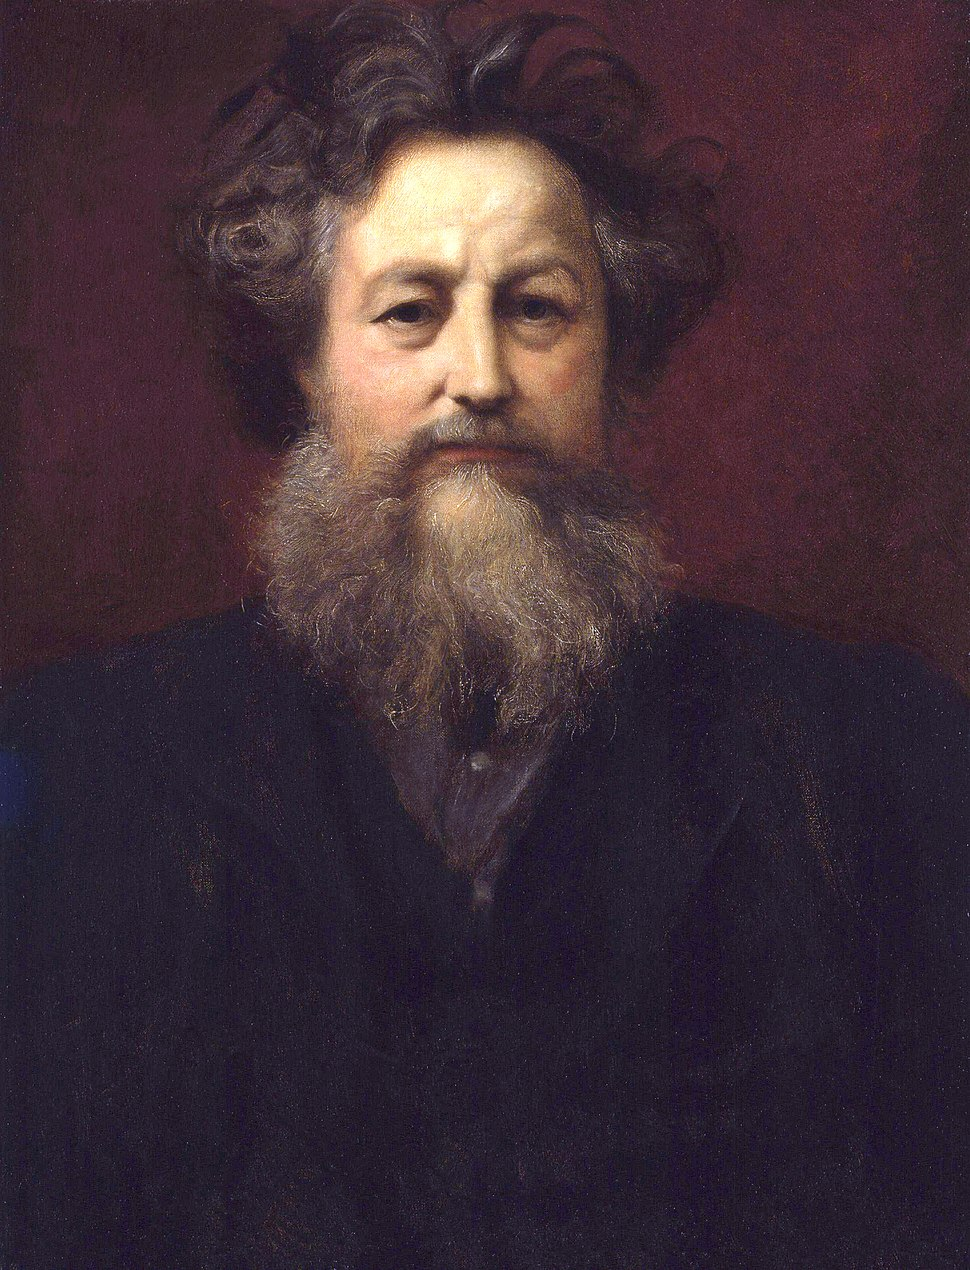 William Morris by Sir William Blake Richmond retouched